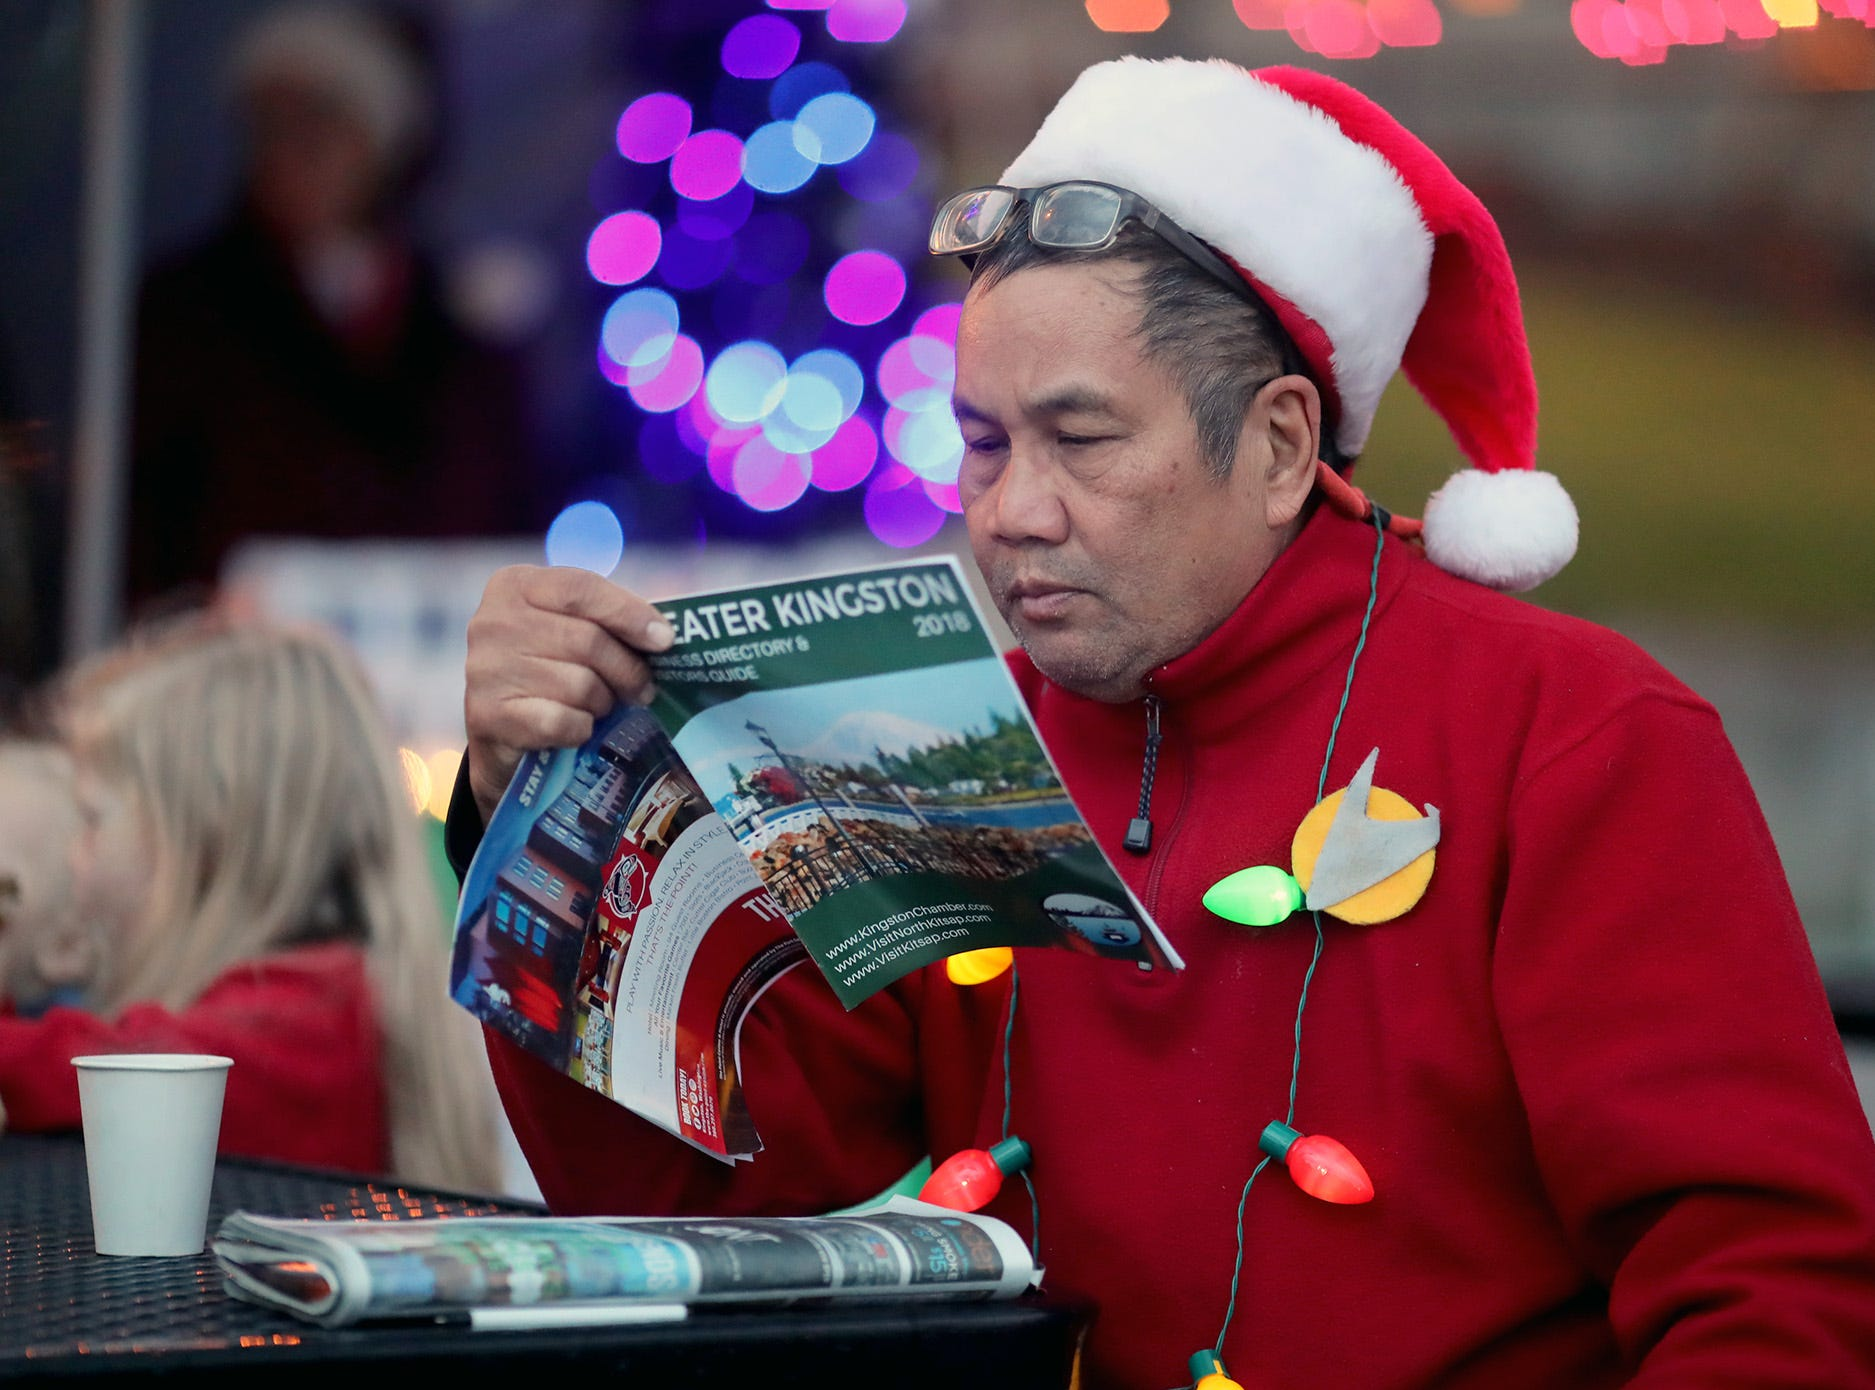 The Kingston Cove Christmas celebration on Saturday, December 1, 2018, at Mike Wallace Park in Kingston.The highlight of the event was the arrival of Santa and the Christmas tree, and park lighting.Jim Kaanana of Seattle reads up on Kingston as he waits for the tree lighting.